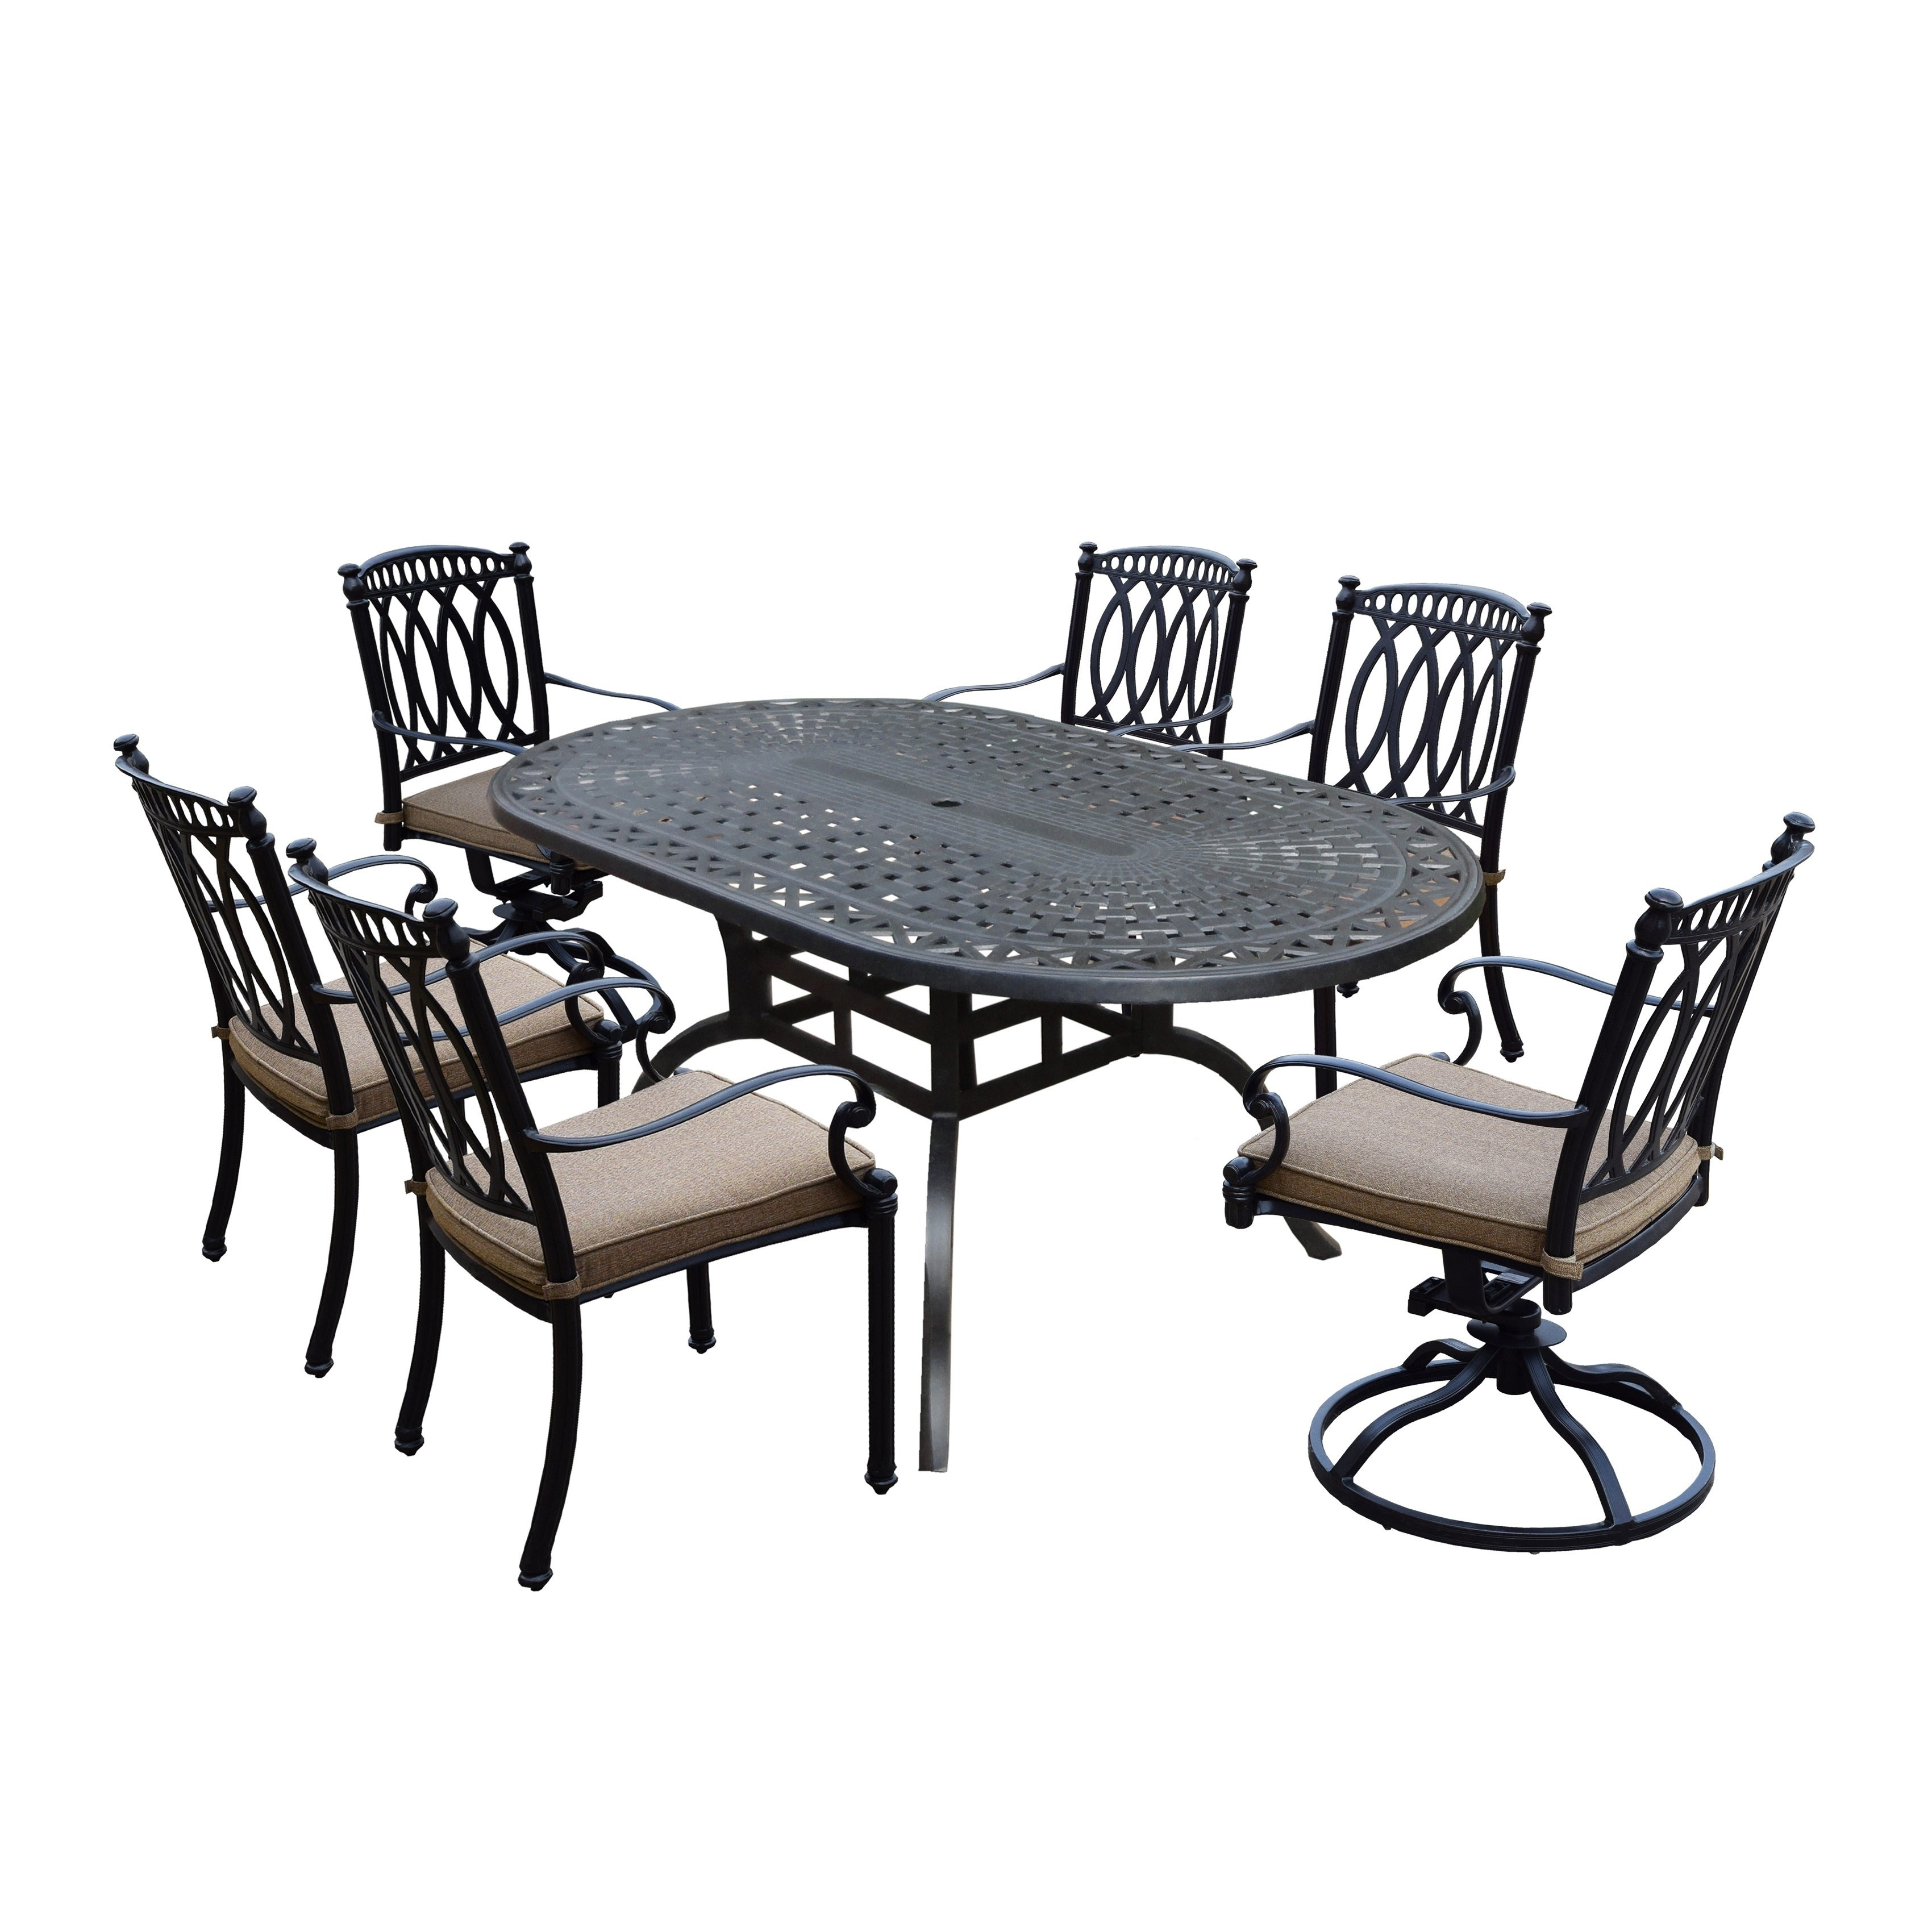 Milan 7 Piece Set With Oval Table 4 Cushioned And Stackable Chairs And 2 Swivel Rockers